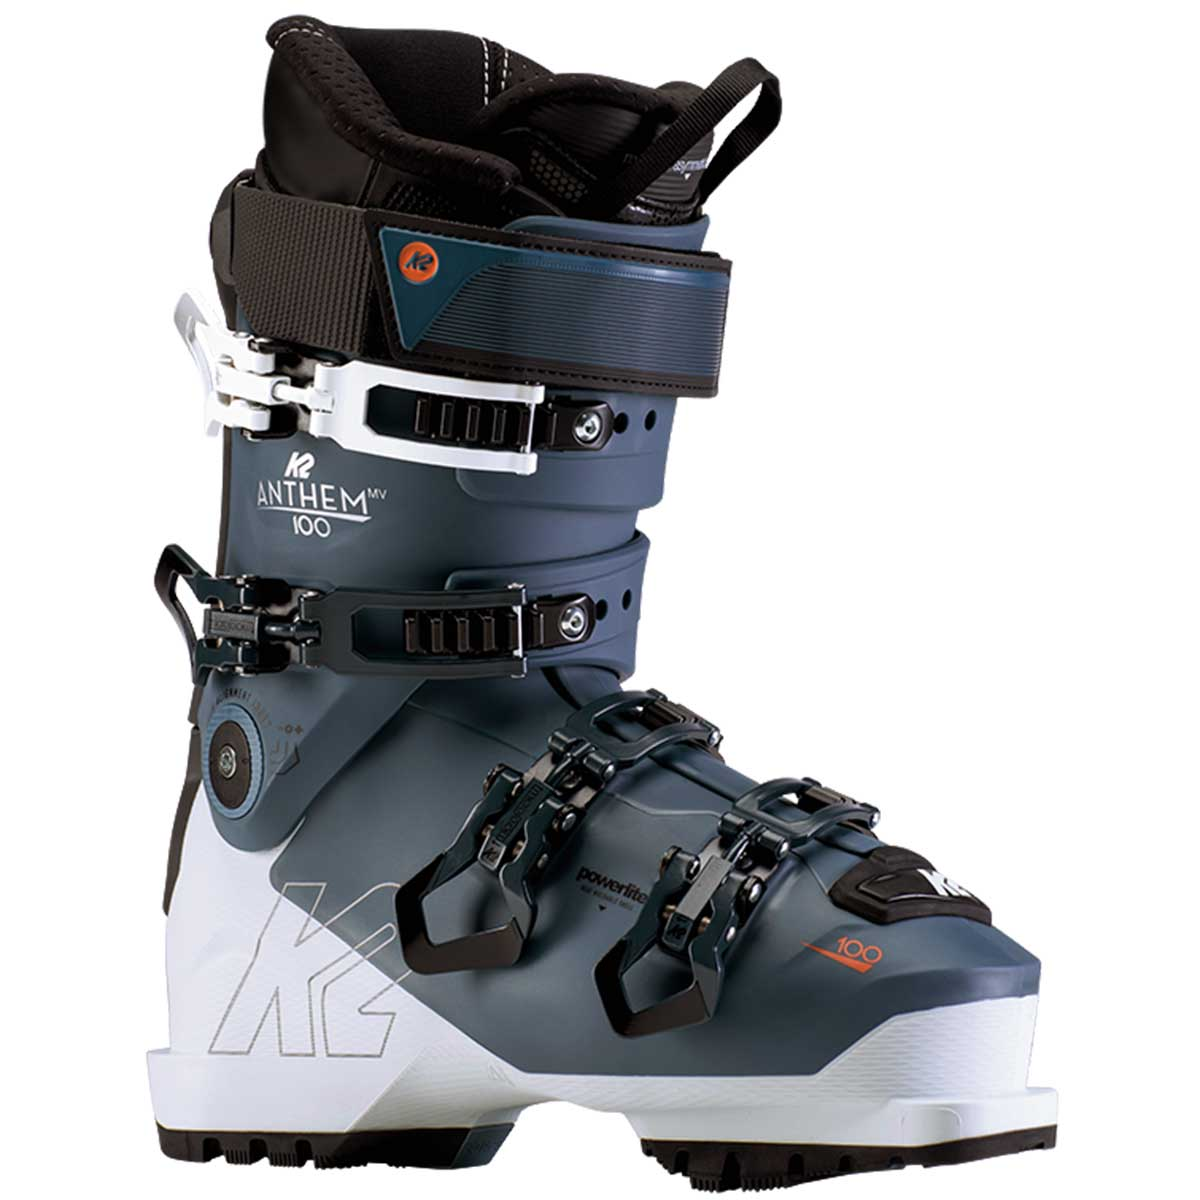 K2 Anthem 100 LV women's ski boot in grey